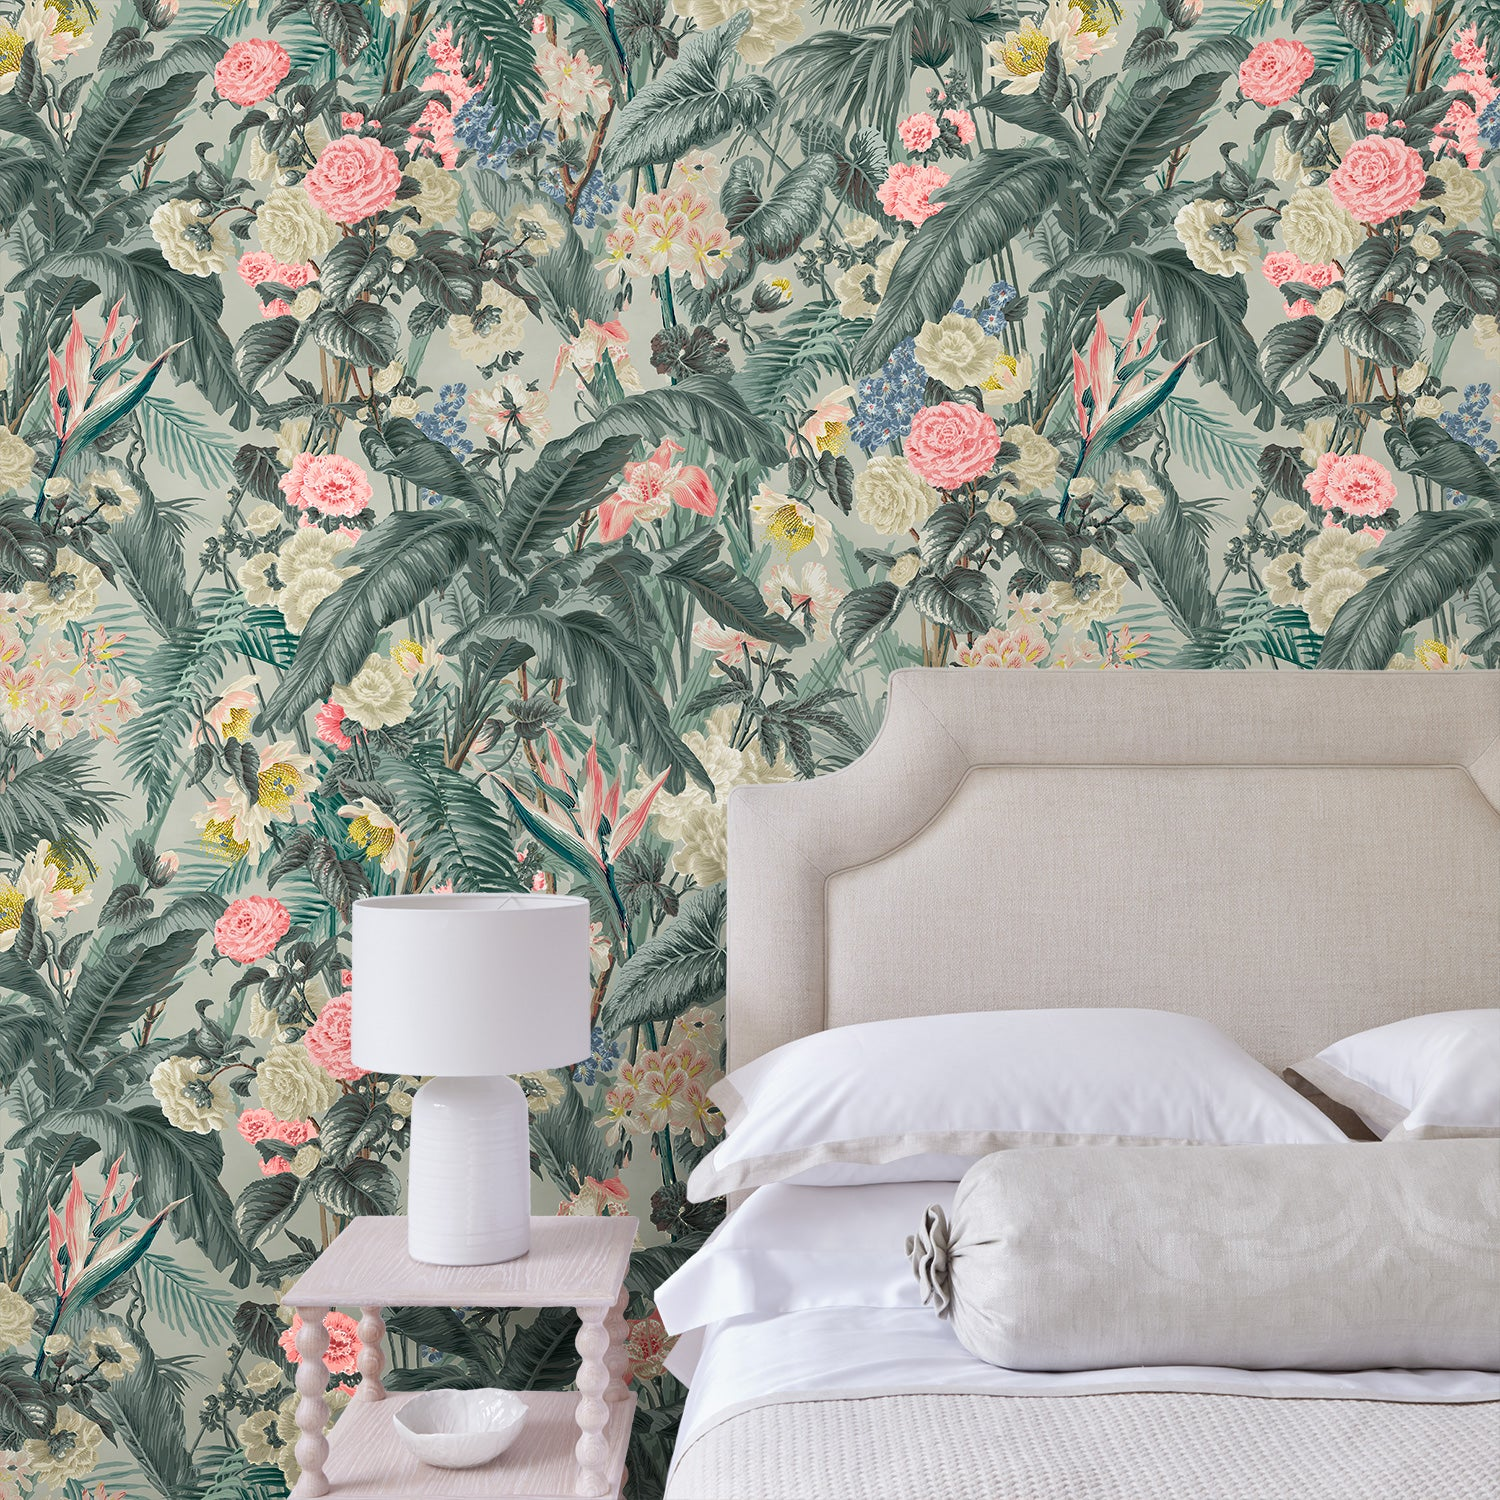 Bedroom with a luxury designer wallpaper featuring a tropical design